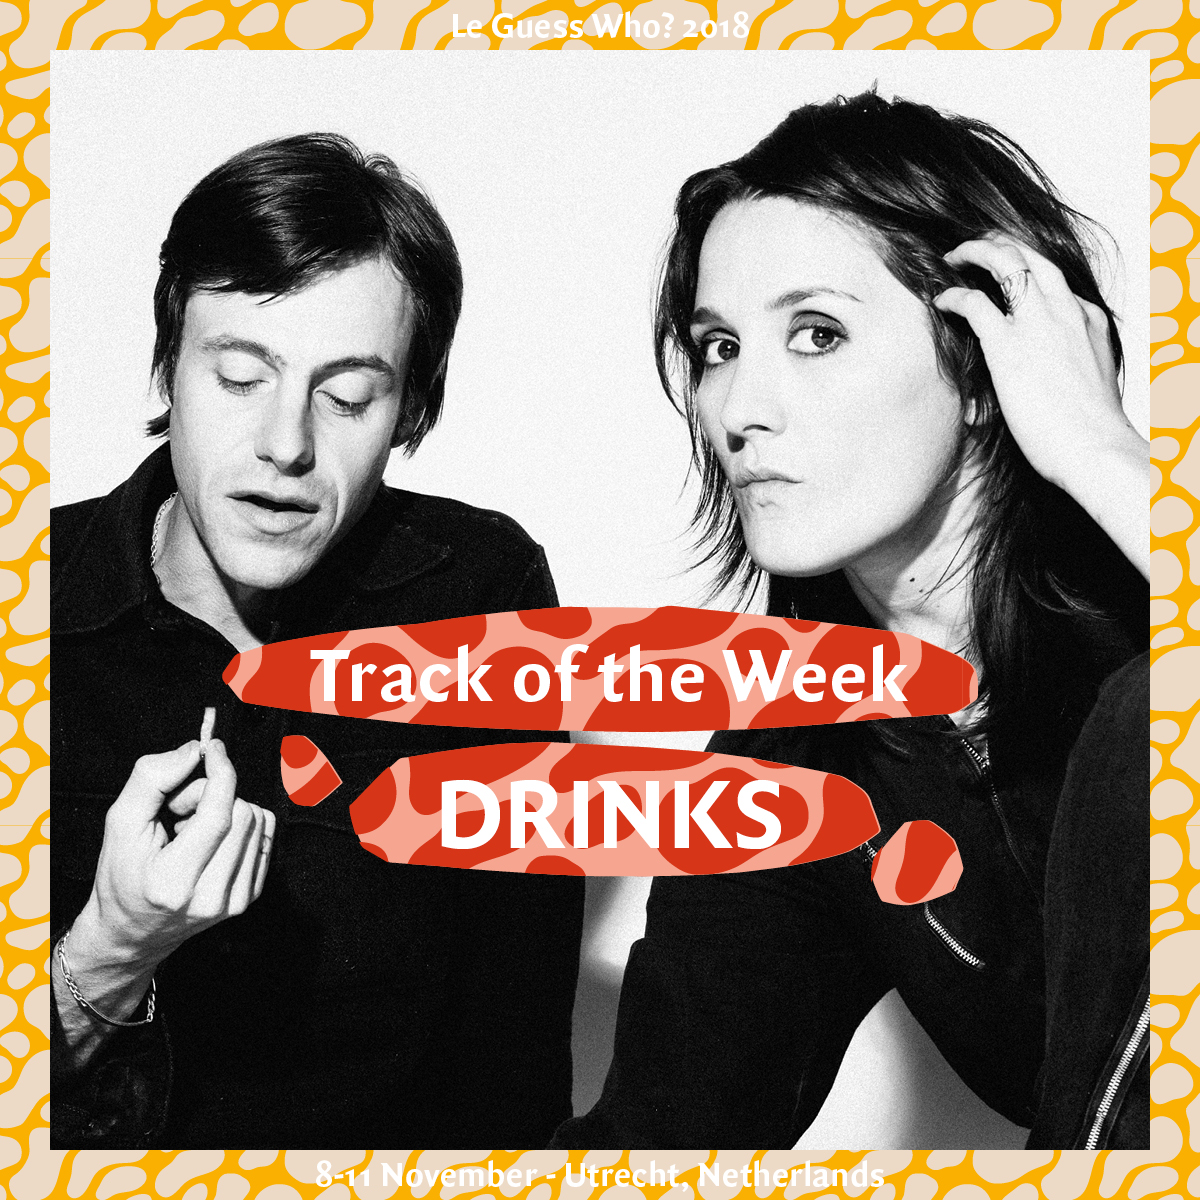 Track of the Week #8: DRINKS - 'Corner Shops'